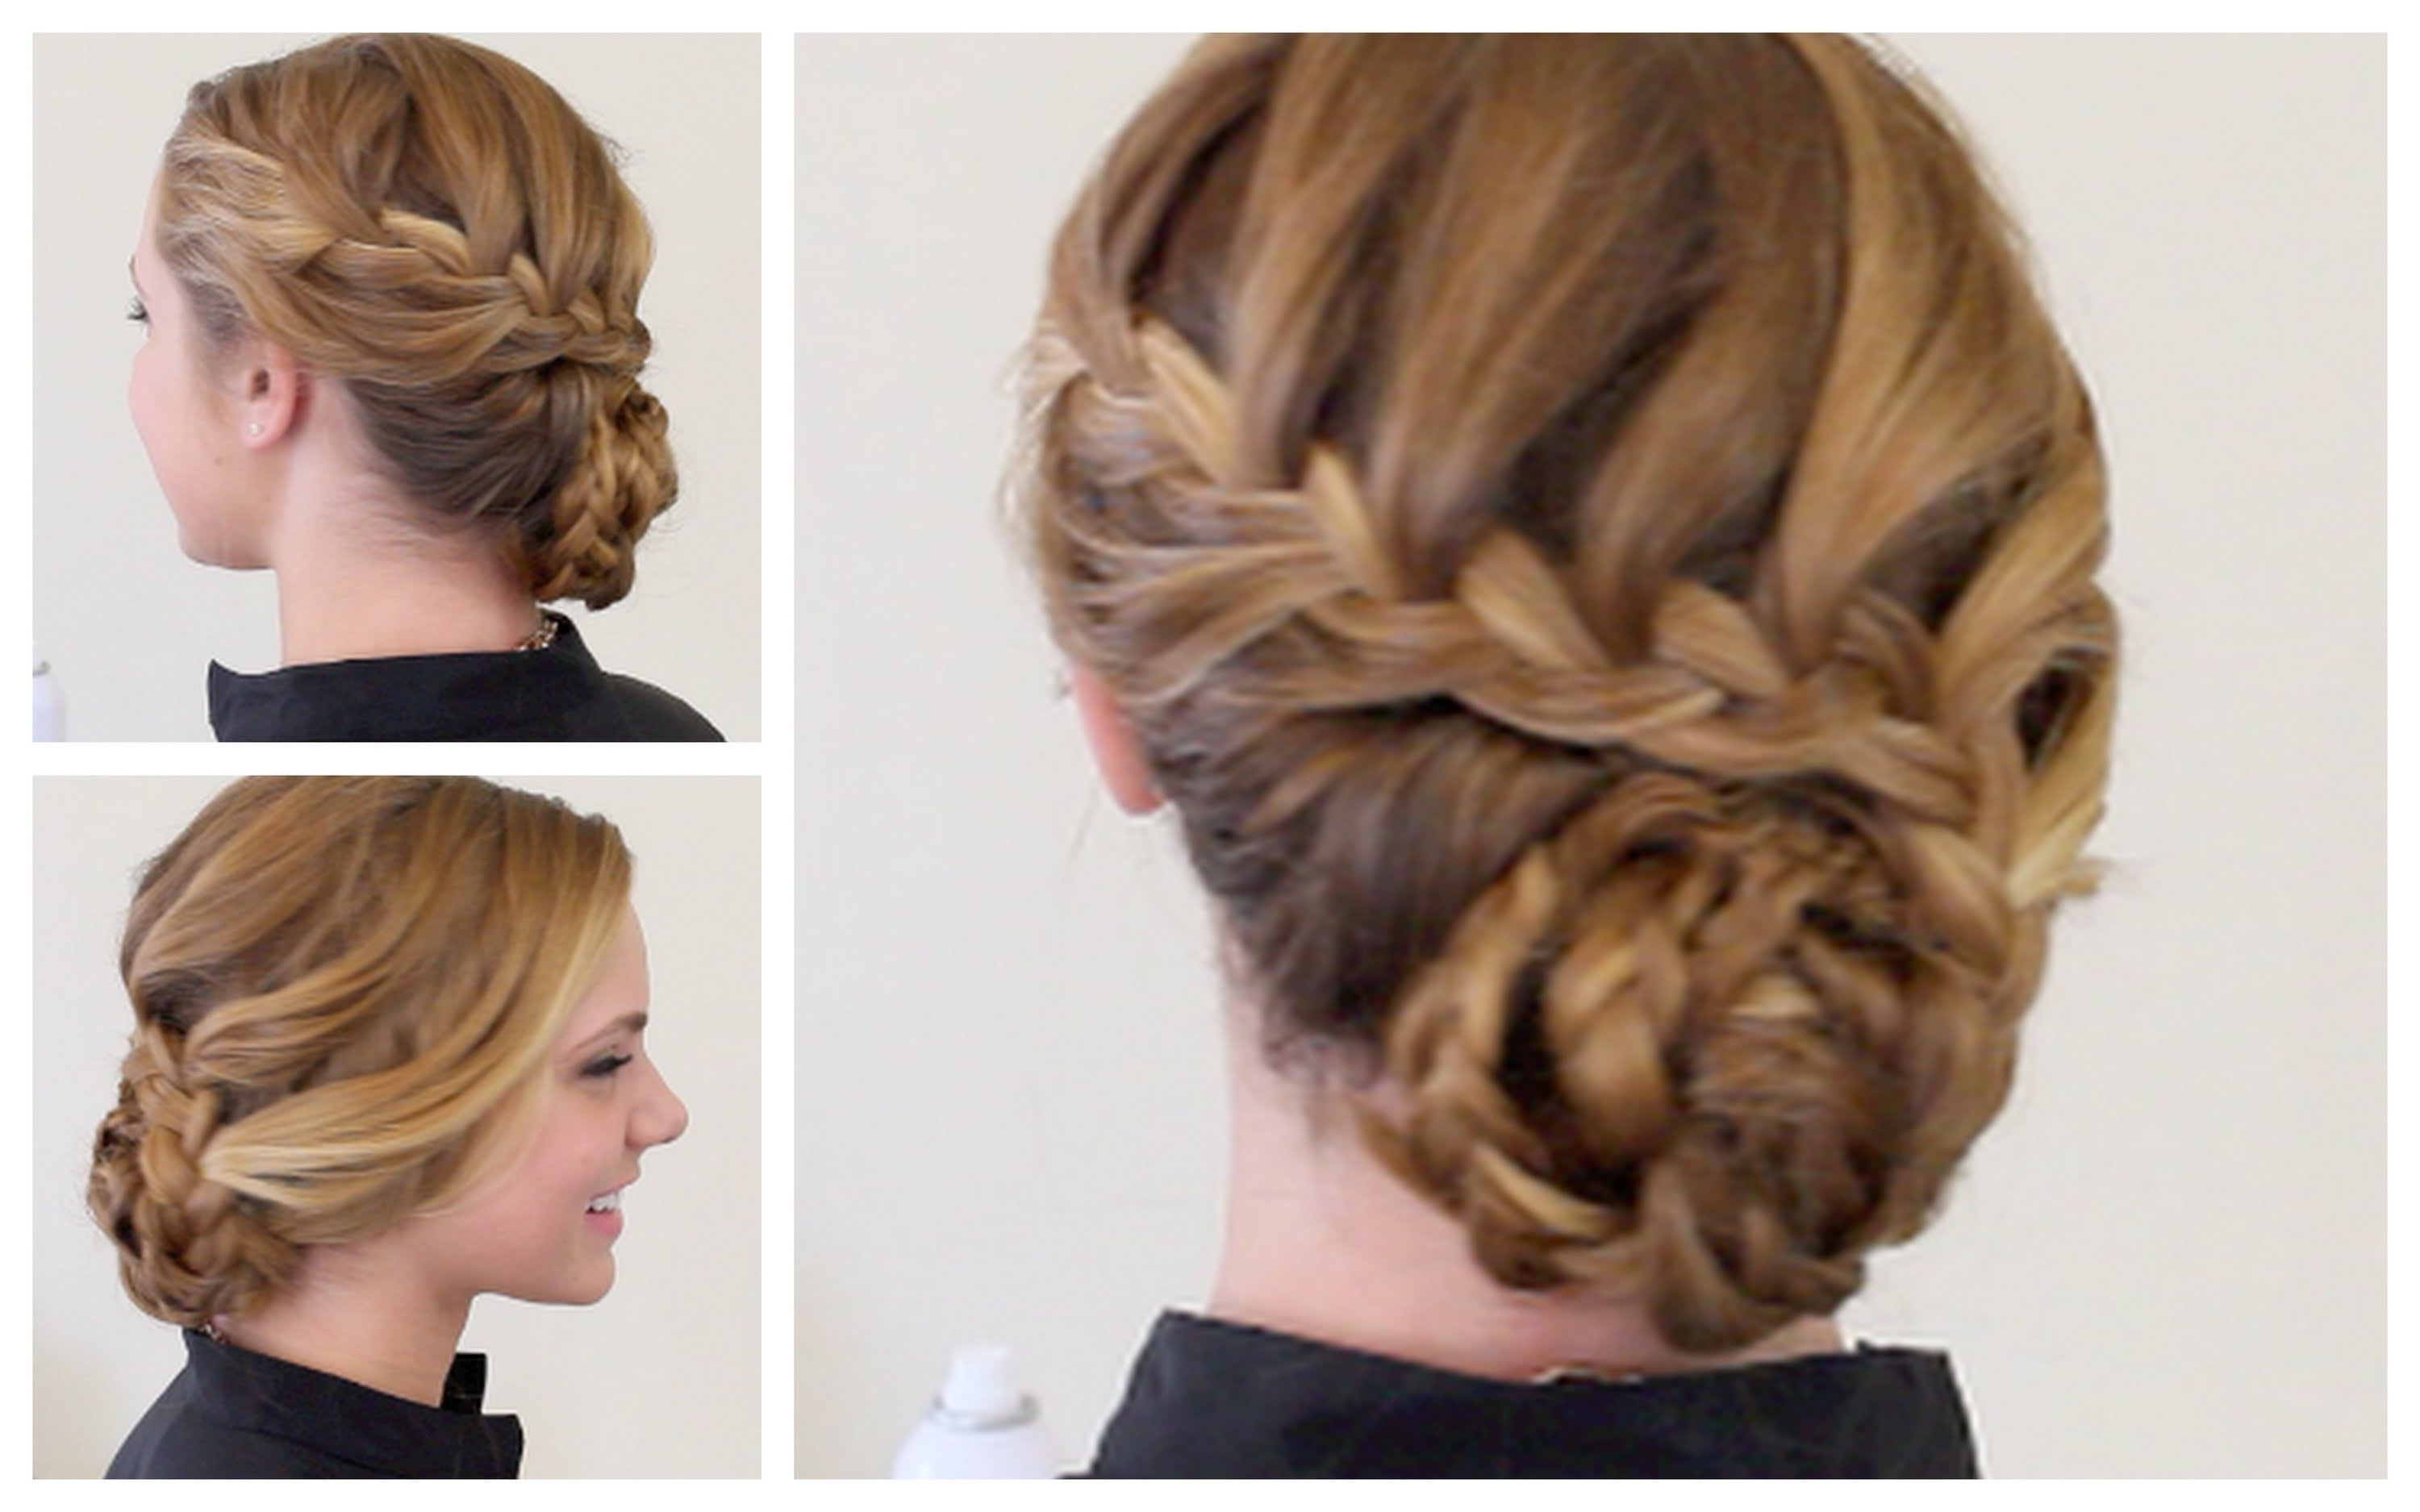 Prom Hairstyles With Waterfall Braids Formal Braided Hair Stock Within Braided Hair Updo Hairstyles (View 15 of 15)